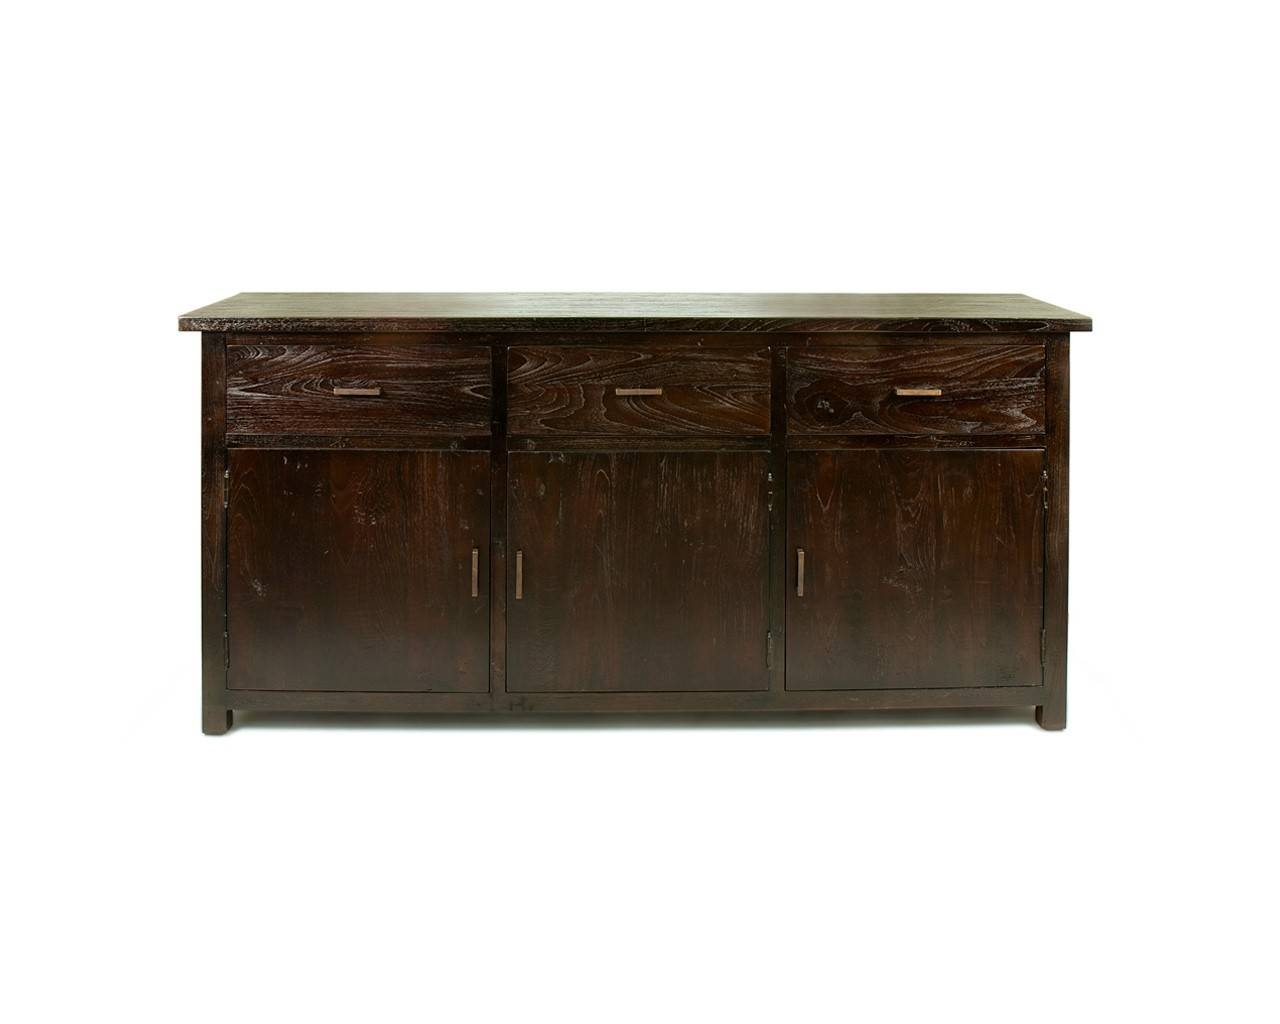 Large Dark Teak Sideboard – Reclaimed Wood Contemporary Furniture Pertaining To Current Dark Wood Sideboards (#5 of 15)